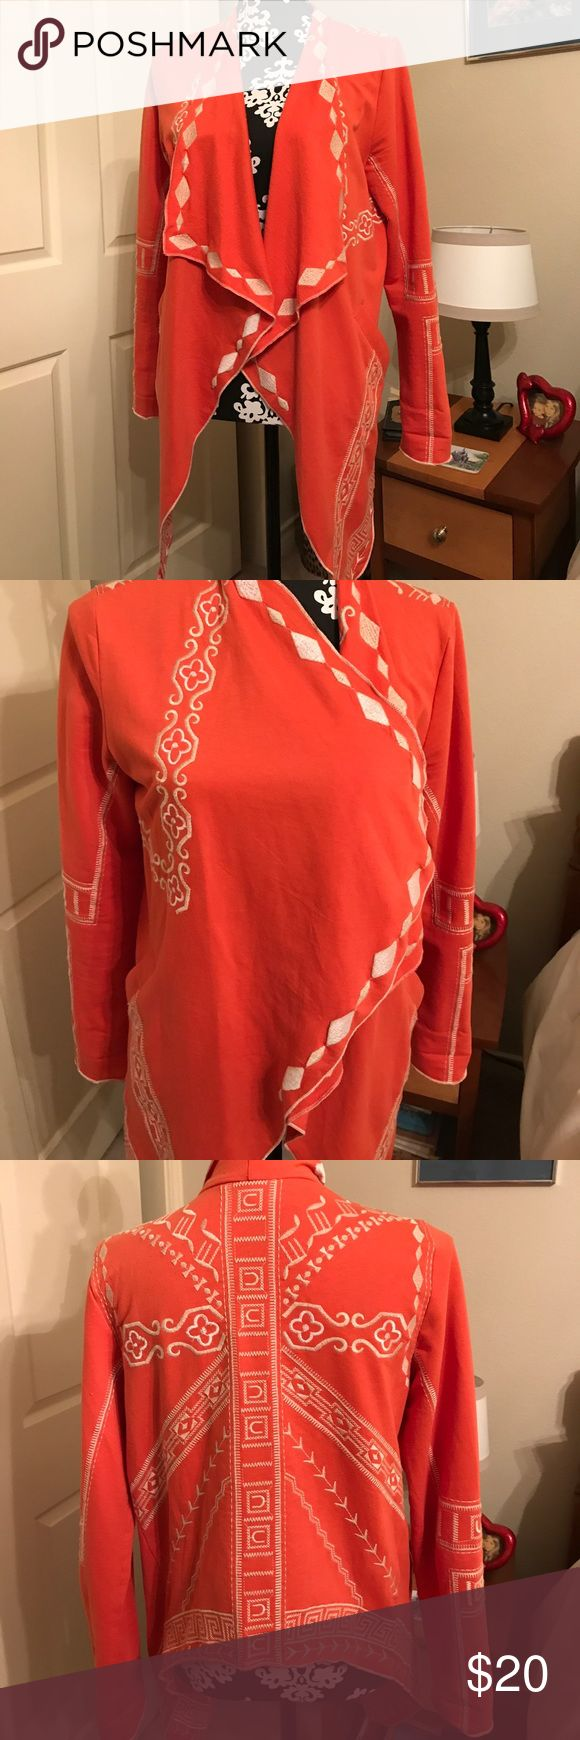 Southwestern Designed Jacket Saw one just like it in blue on Grace and Frankie episode.  Frankie was wearing it, of course!  Unlined, has pockets and lightweight!  100% cotton. Monoreno Tops